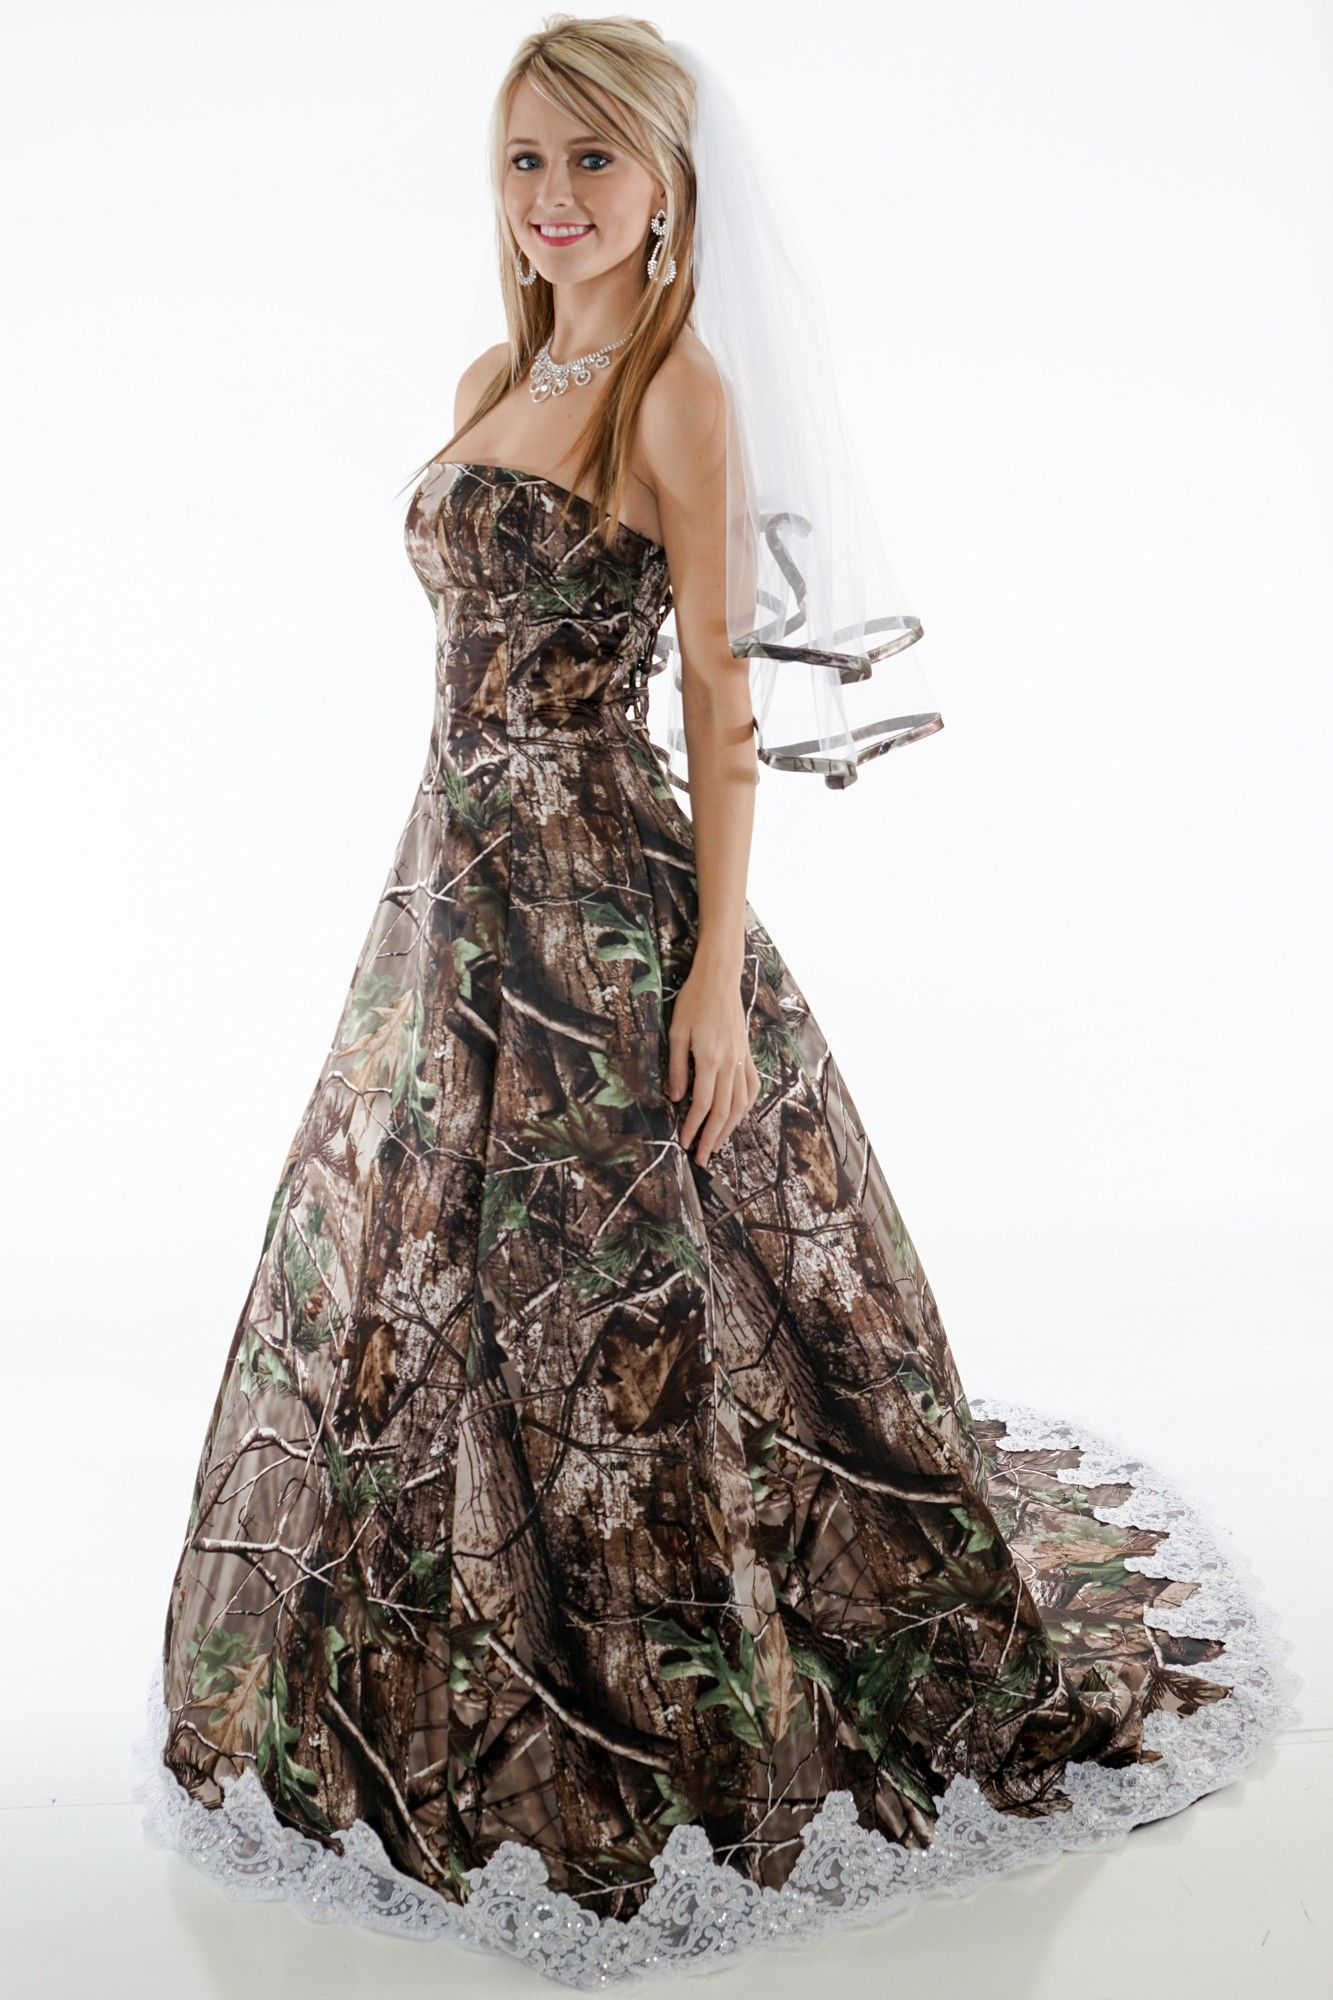 Strapless aline gown with full train | wedding | Pinterest | Gowns ...